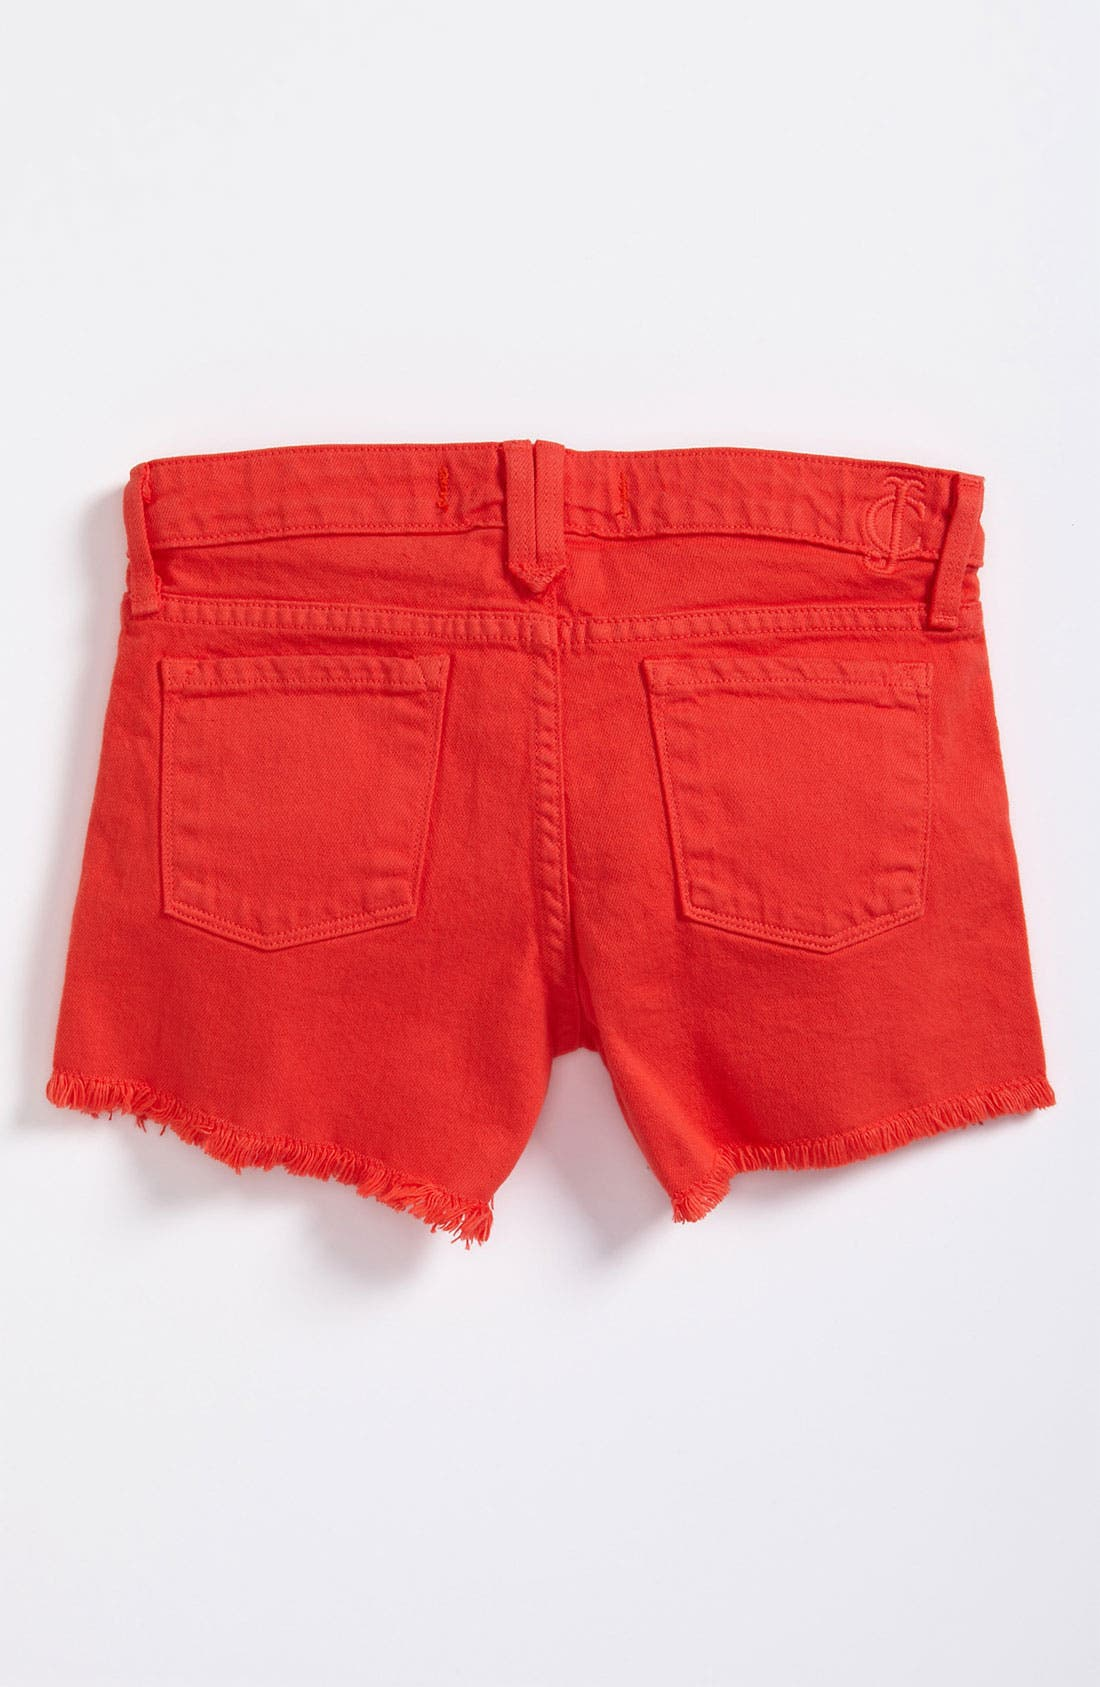 Alternate Image 1 Selected - Juicy Couture Denim Shorts (Little Girls)